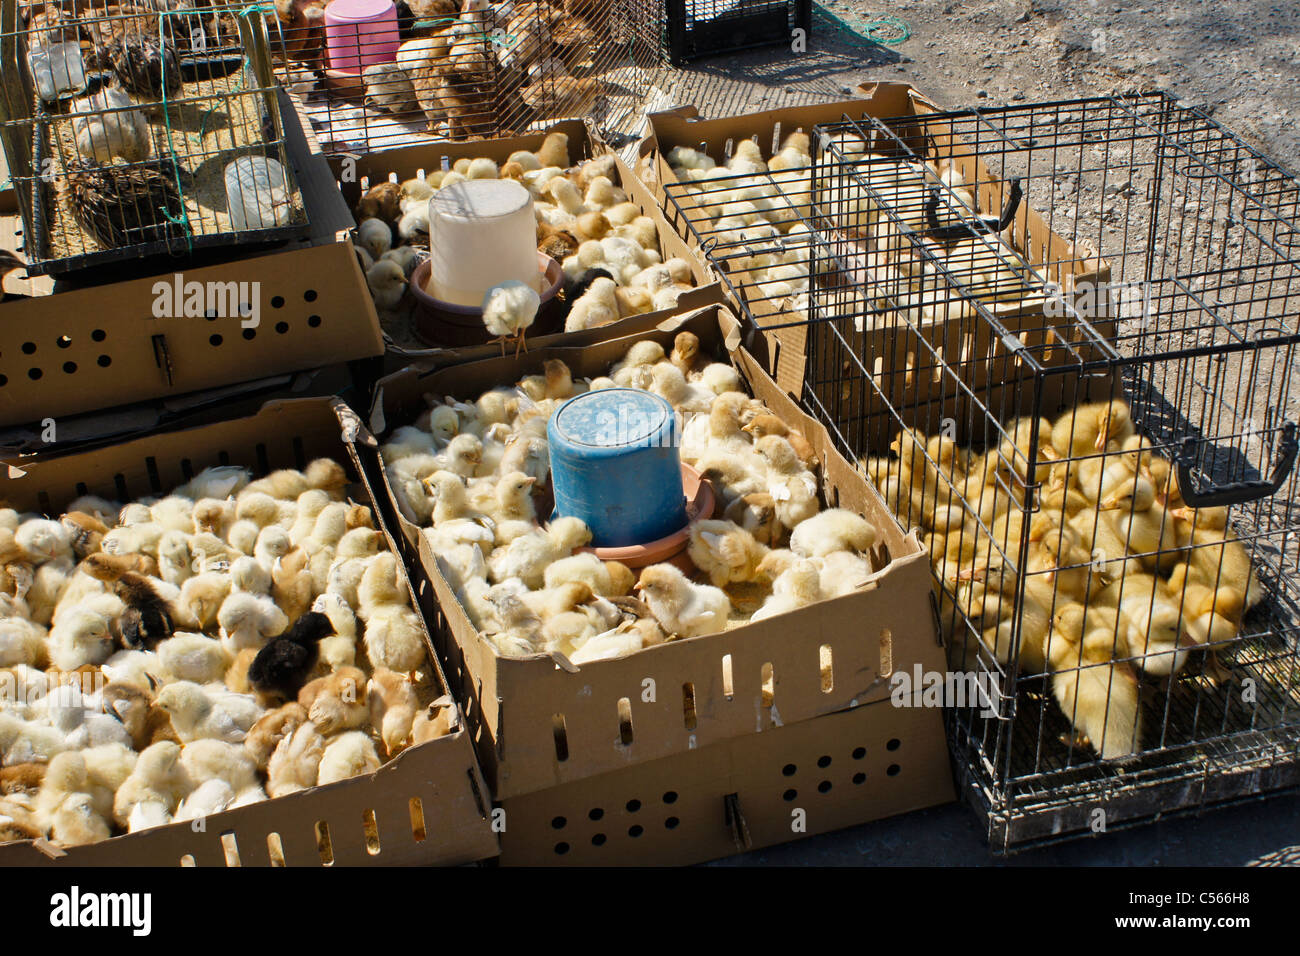 Chicks and ducklings for sale by roadside, Bergama, Turkey - Stock Image